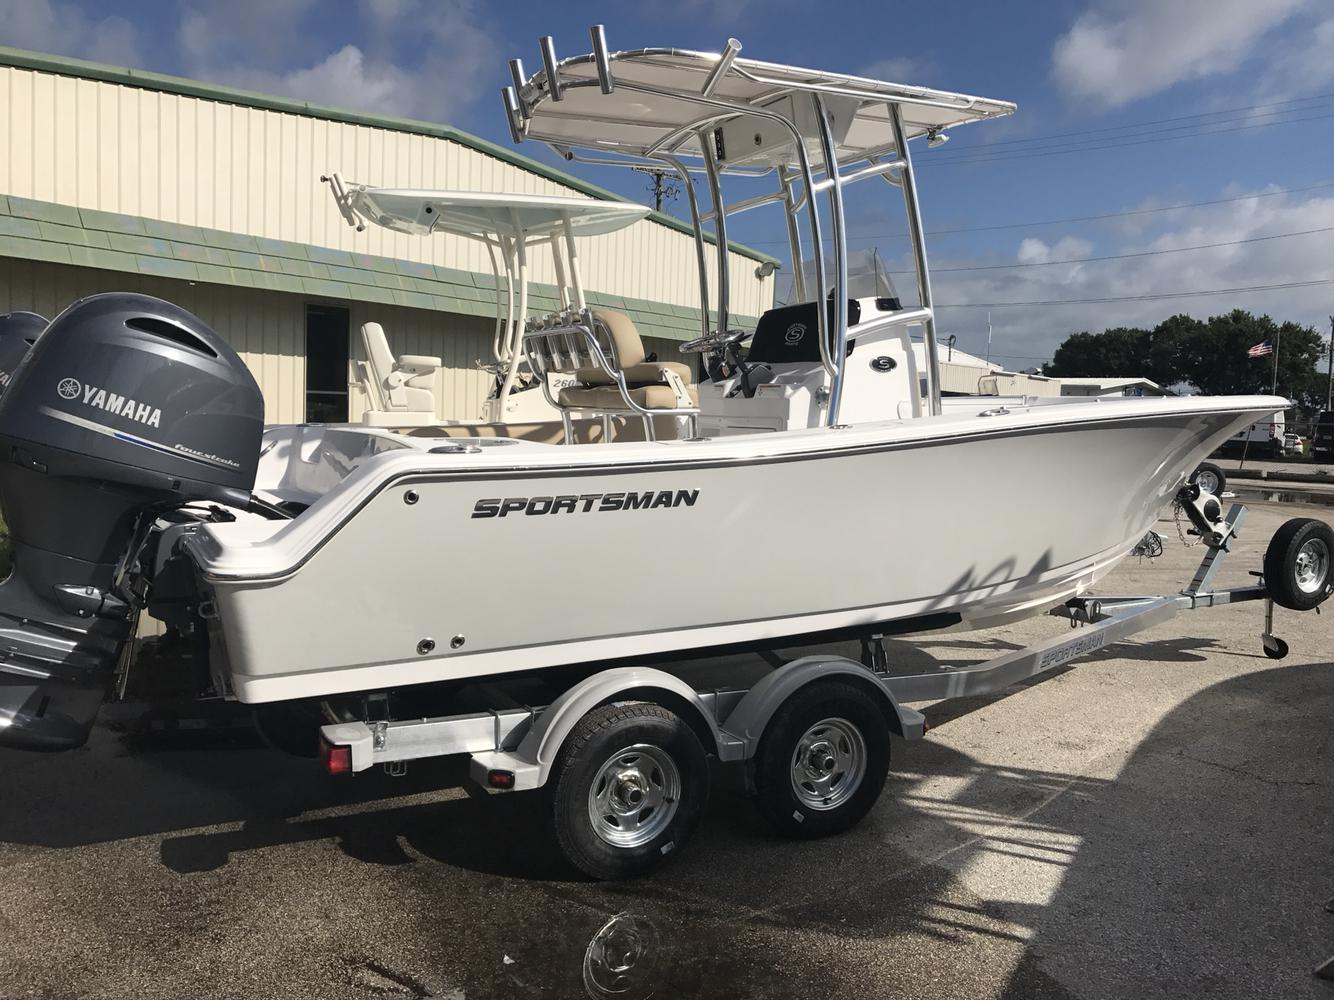 5e13510b 7d48 4efc 8e30 ba619a824f14 inventory from sportsman boats Sportsman 211 Heritage Live Well at panicattacktreatment.co